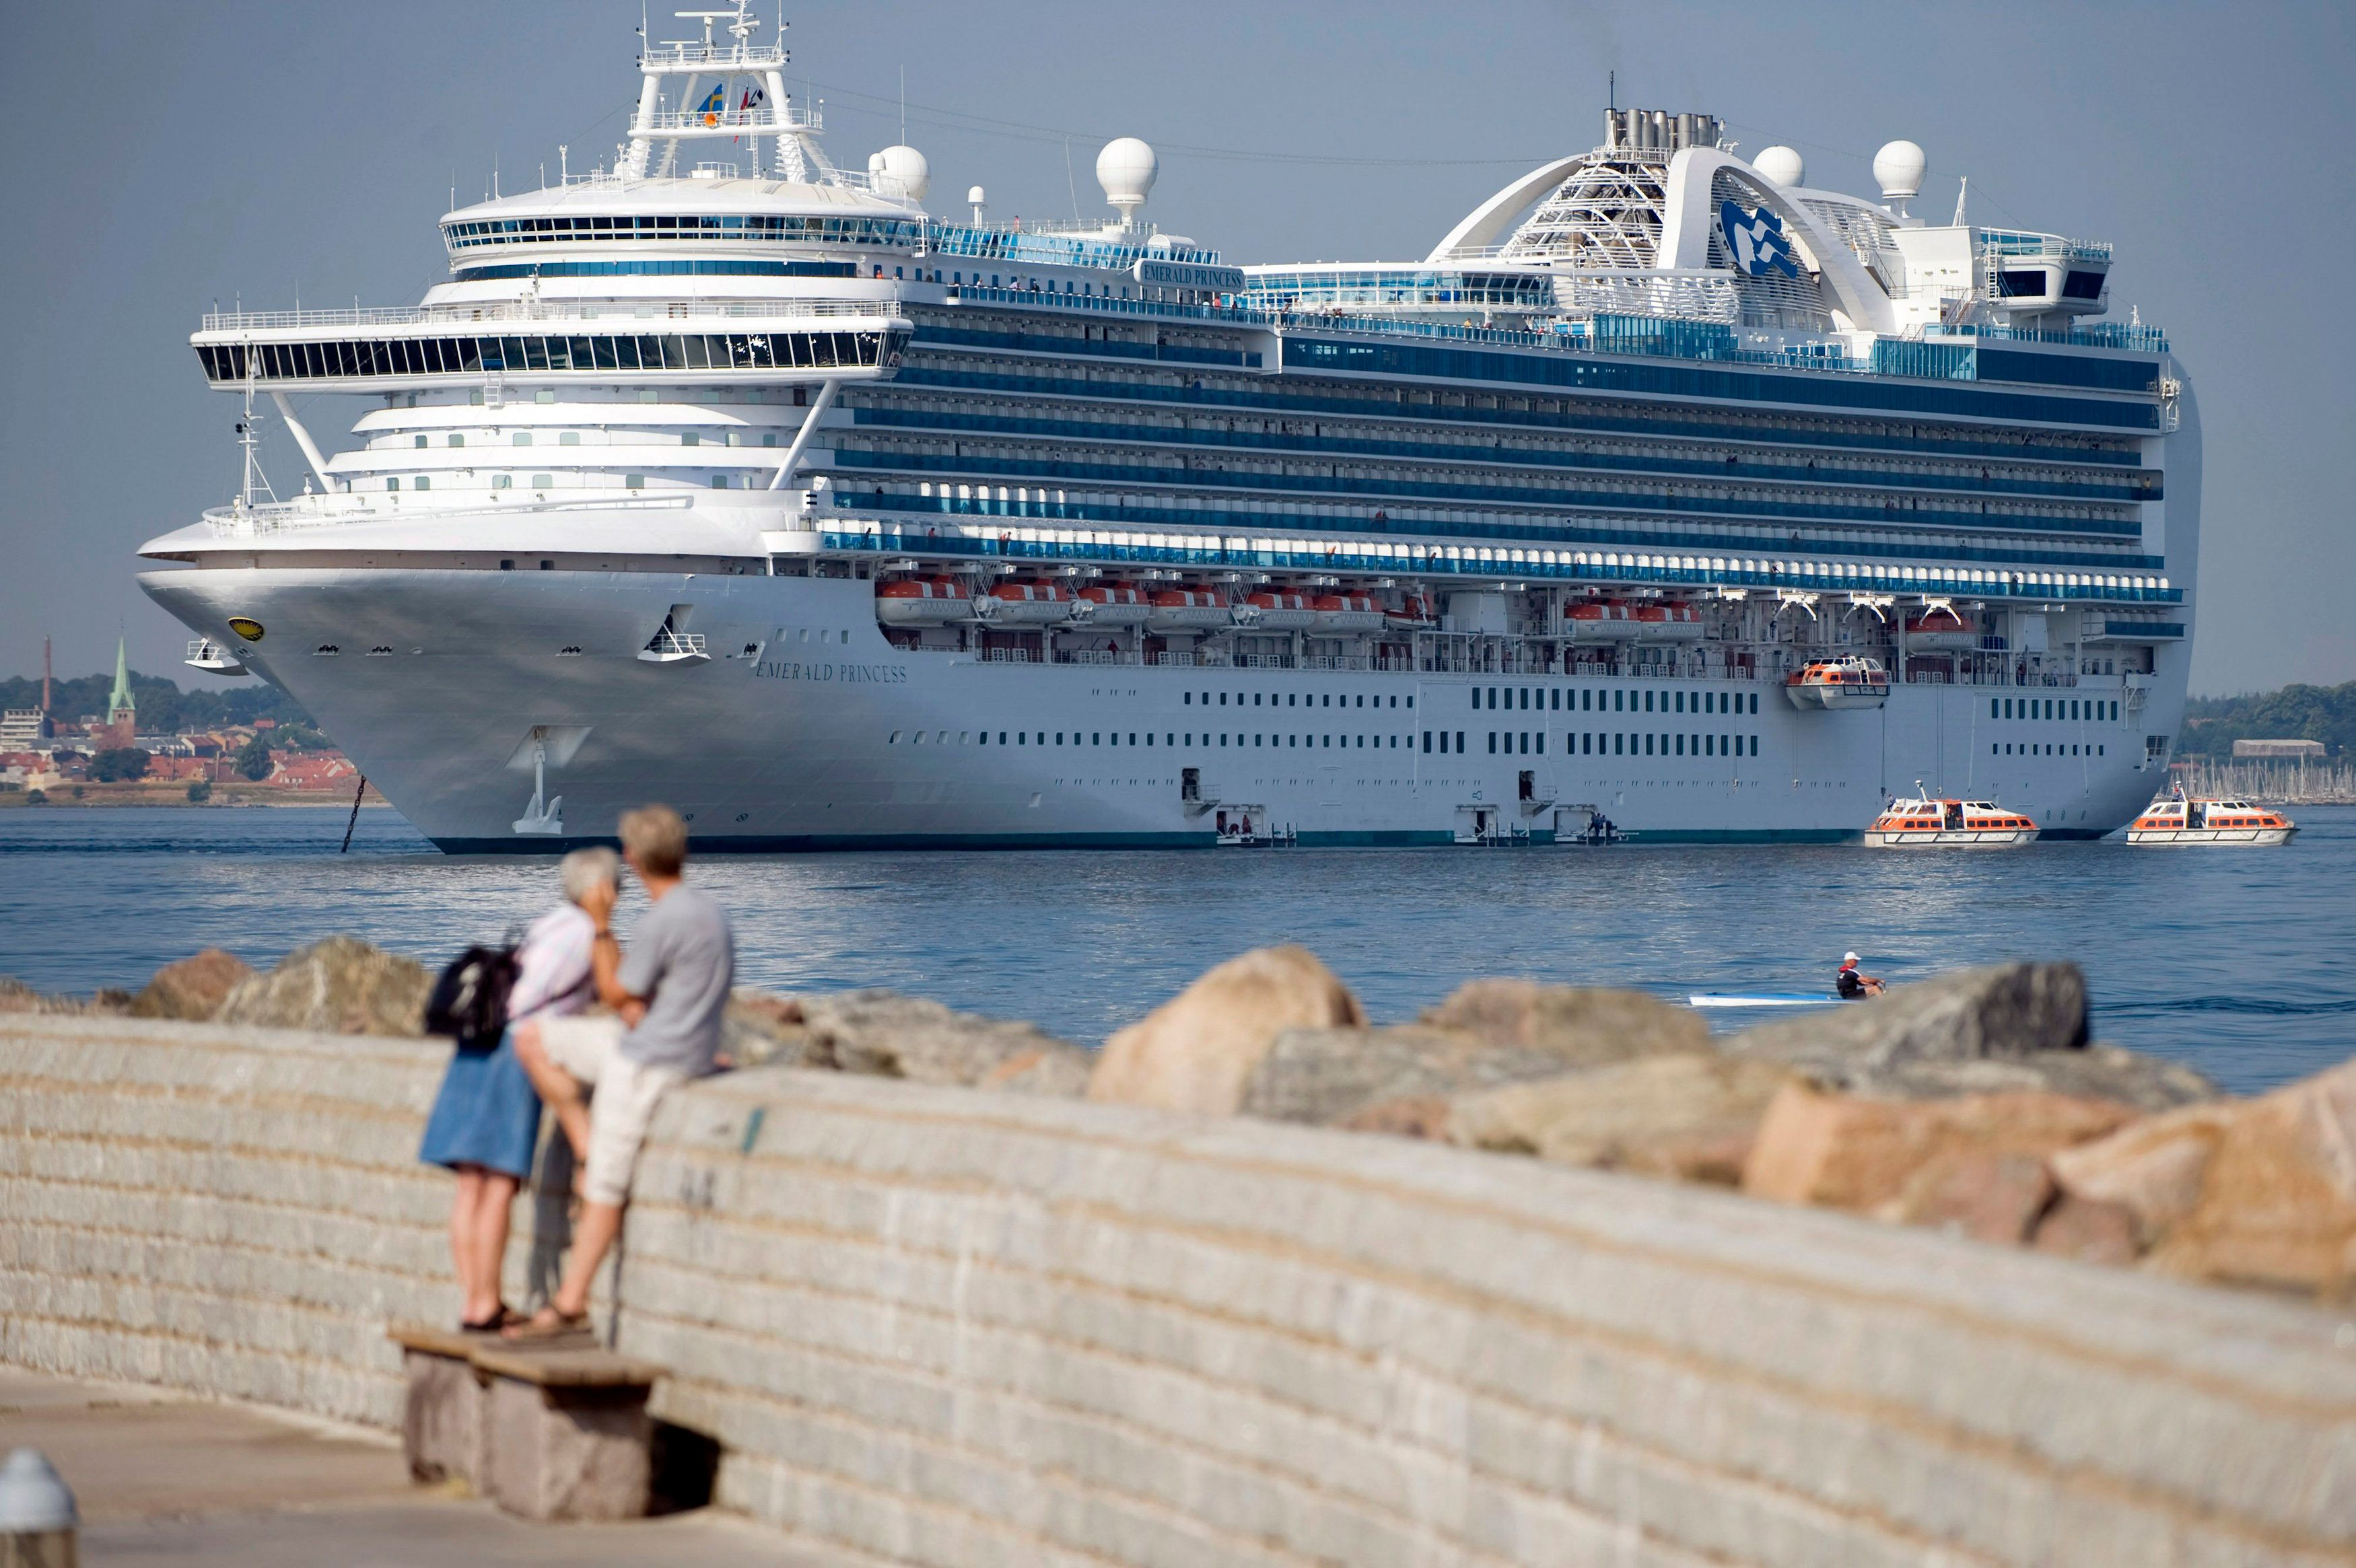 The Bermudan cruise ship Emerald Princess anchors in Helsingborg harbor, southern Sweden July 4, 2009. A total of 13 crew members and one passenger were diagnosed with the H1N1 flu virus and quarantined on board when the ship visited Helsinki on June 28. REUTERS/Scanpix Sweden/Bjorn Lindgren (SWEDEN HEALTH TRAVEL) SWEDEN OUT. NO COMMERCIAL OR EDITORIAL SALES IN SWEDEN. NO COMMERCIAL USE